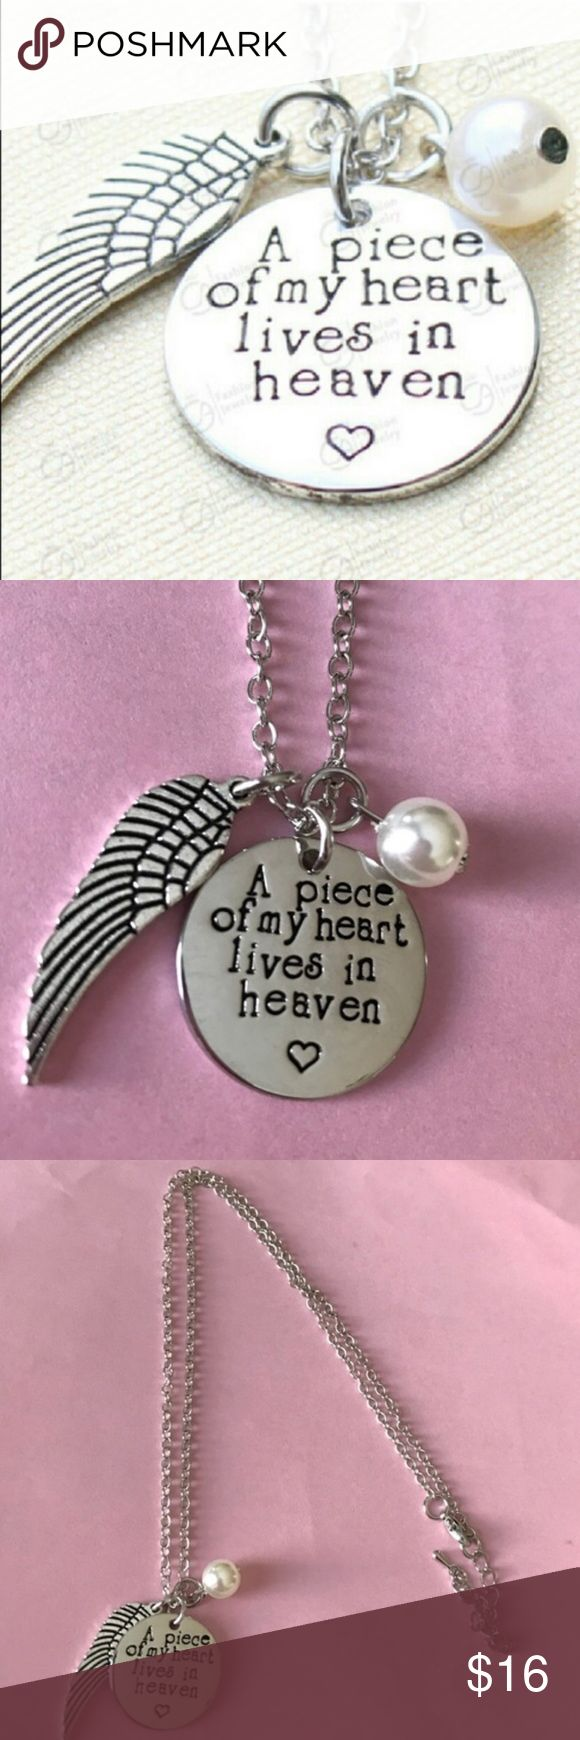 25 Best Ideas About Engraved Necklace On Pinterest